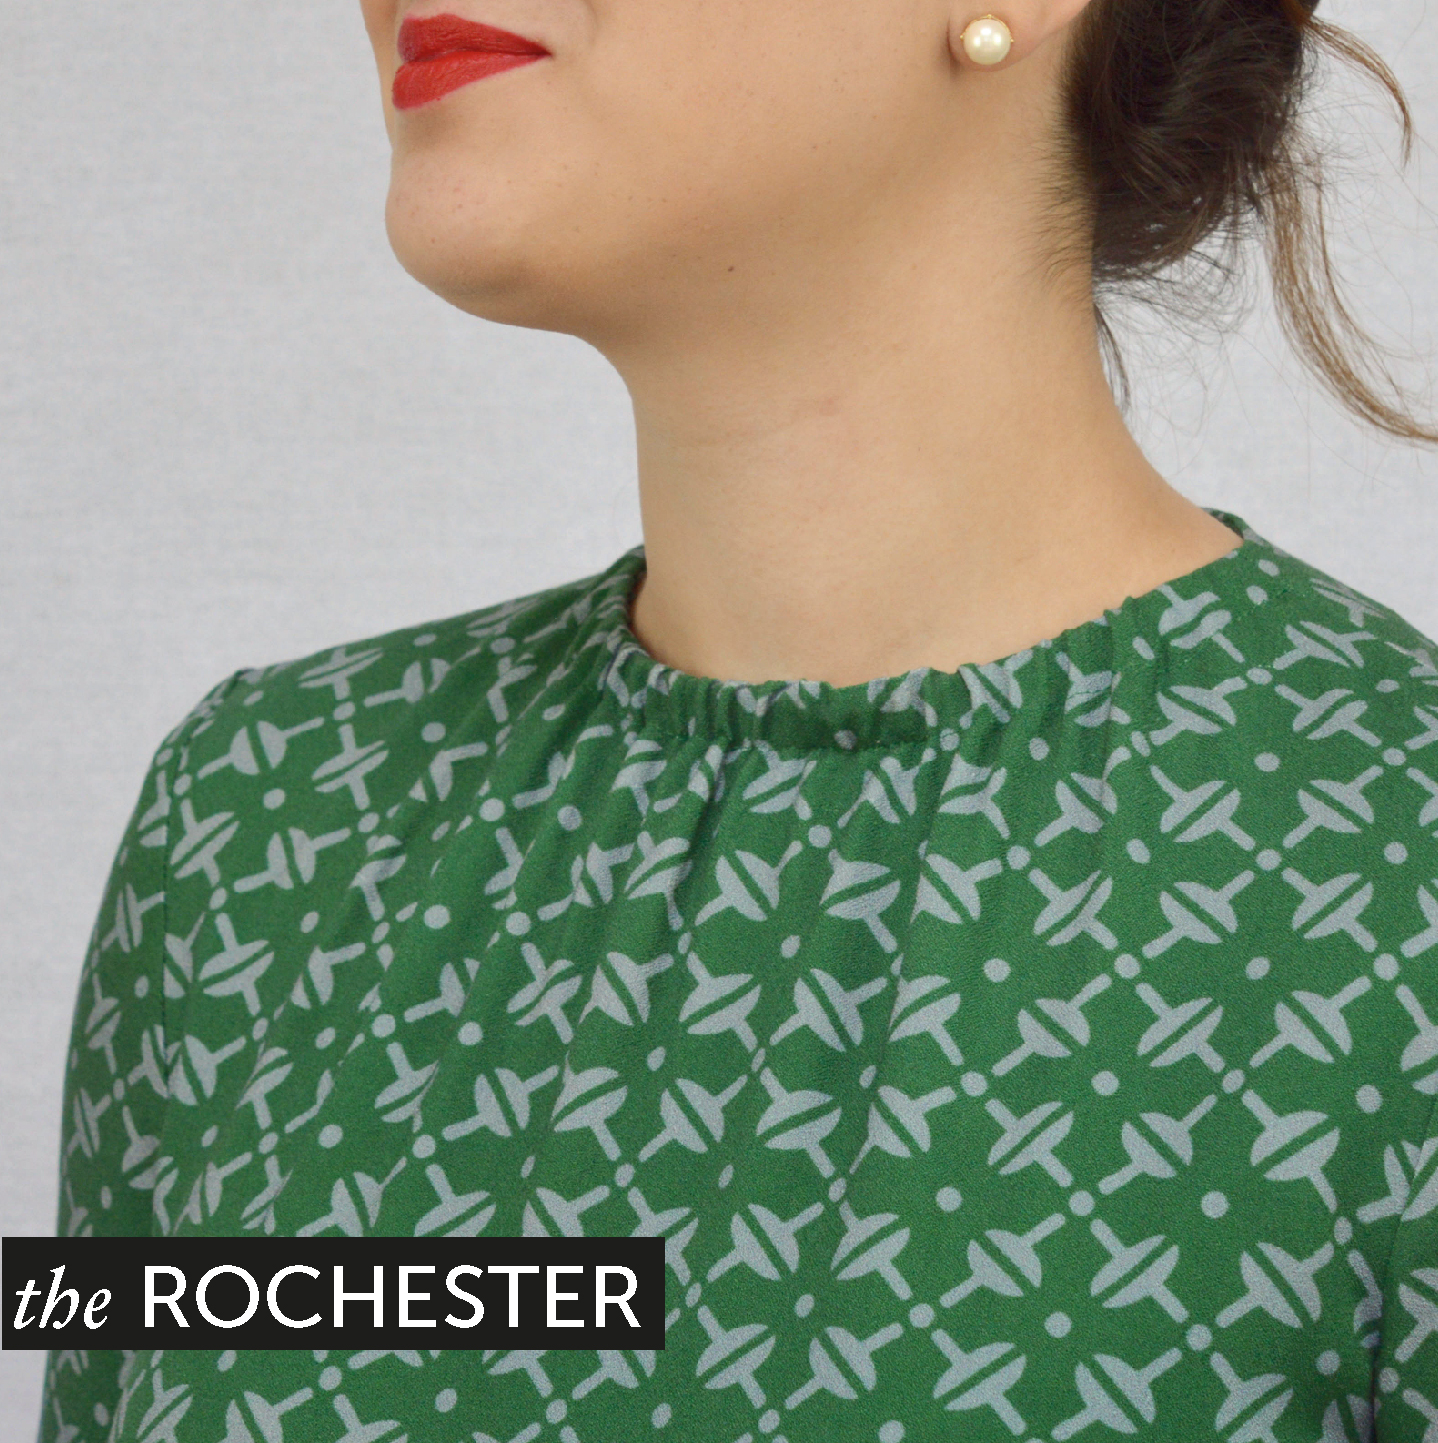 The Rochester - a Maven pattern